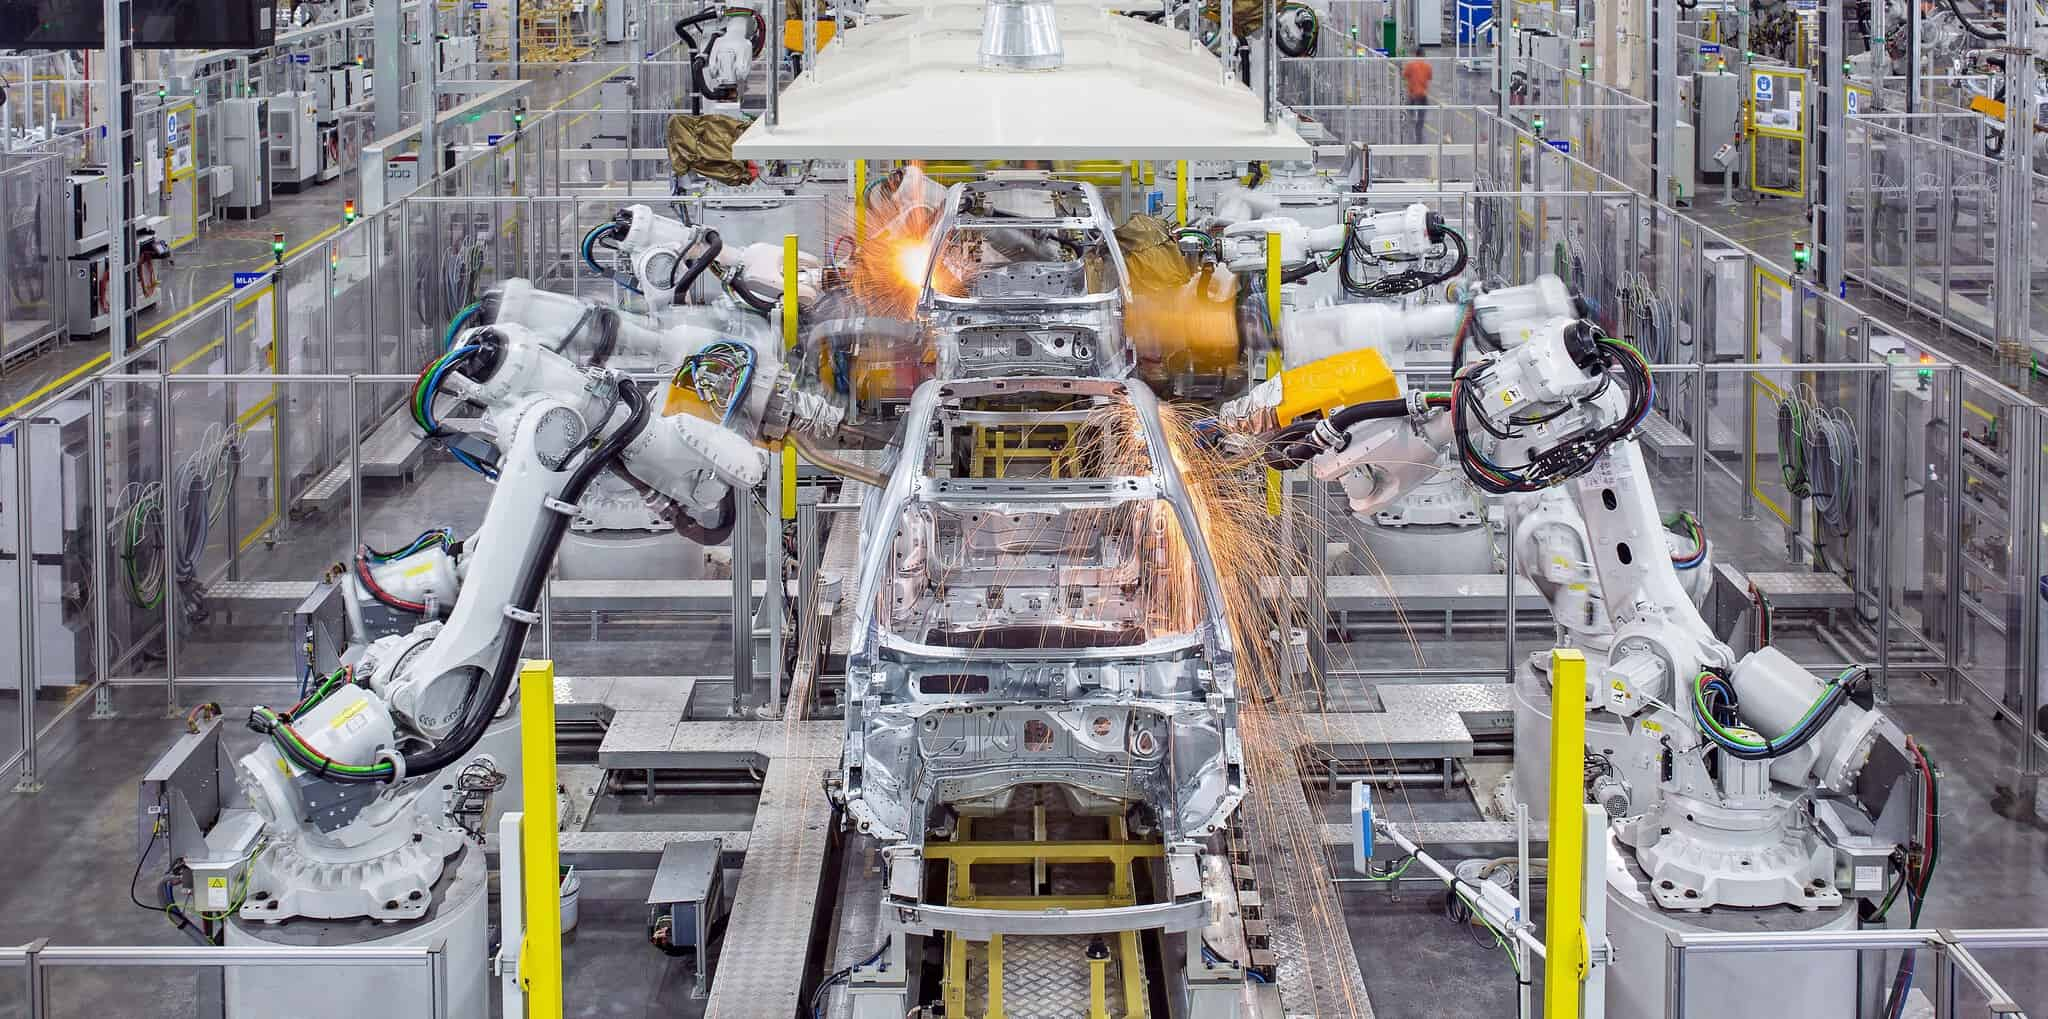 In the Volvo Factory, the cars are assembled by robots in a high-tech way